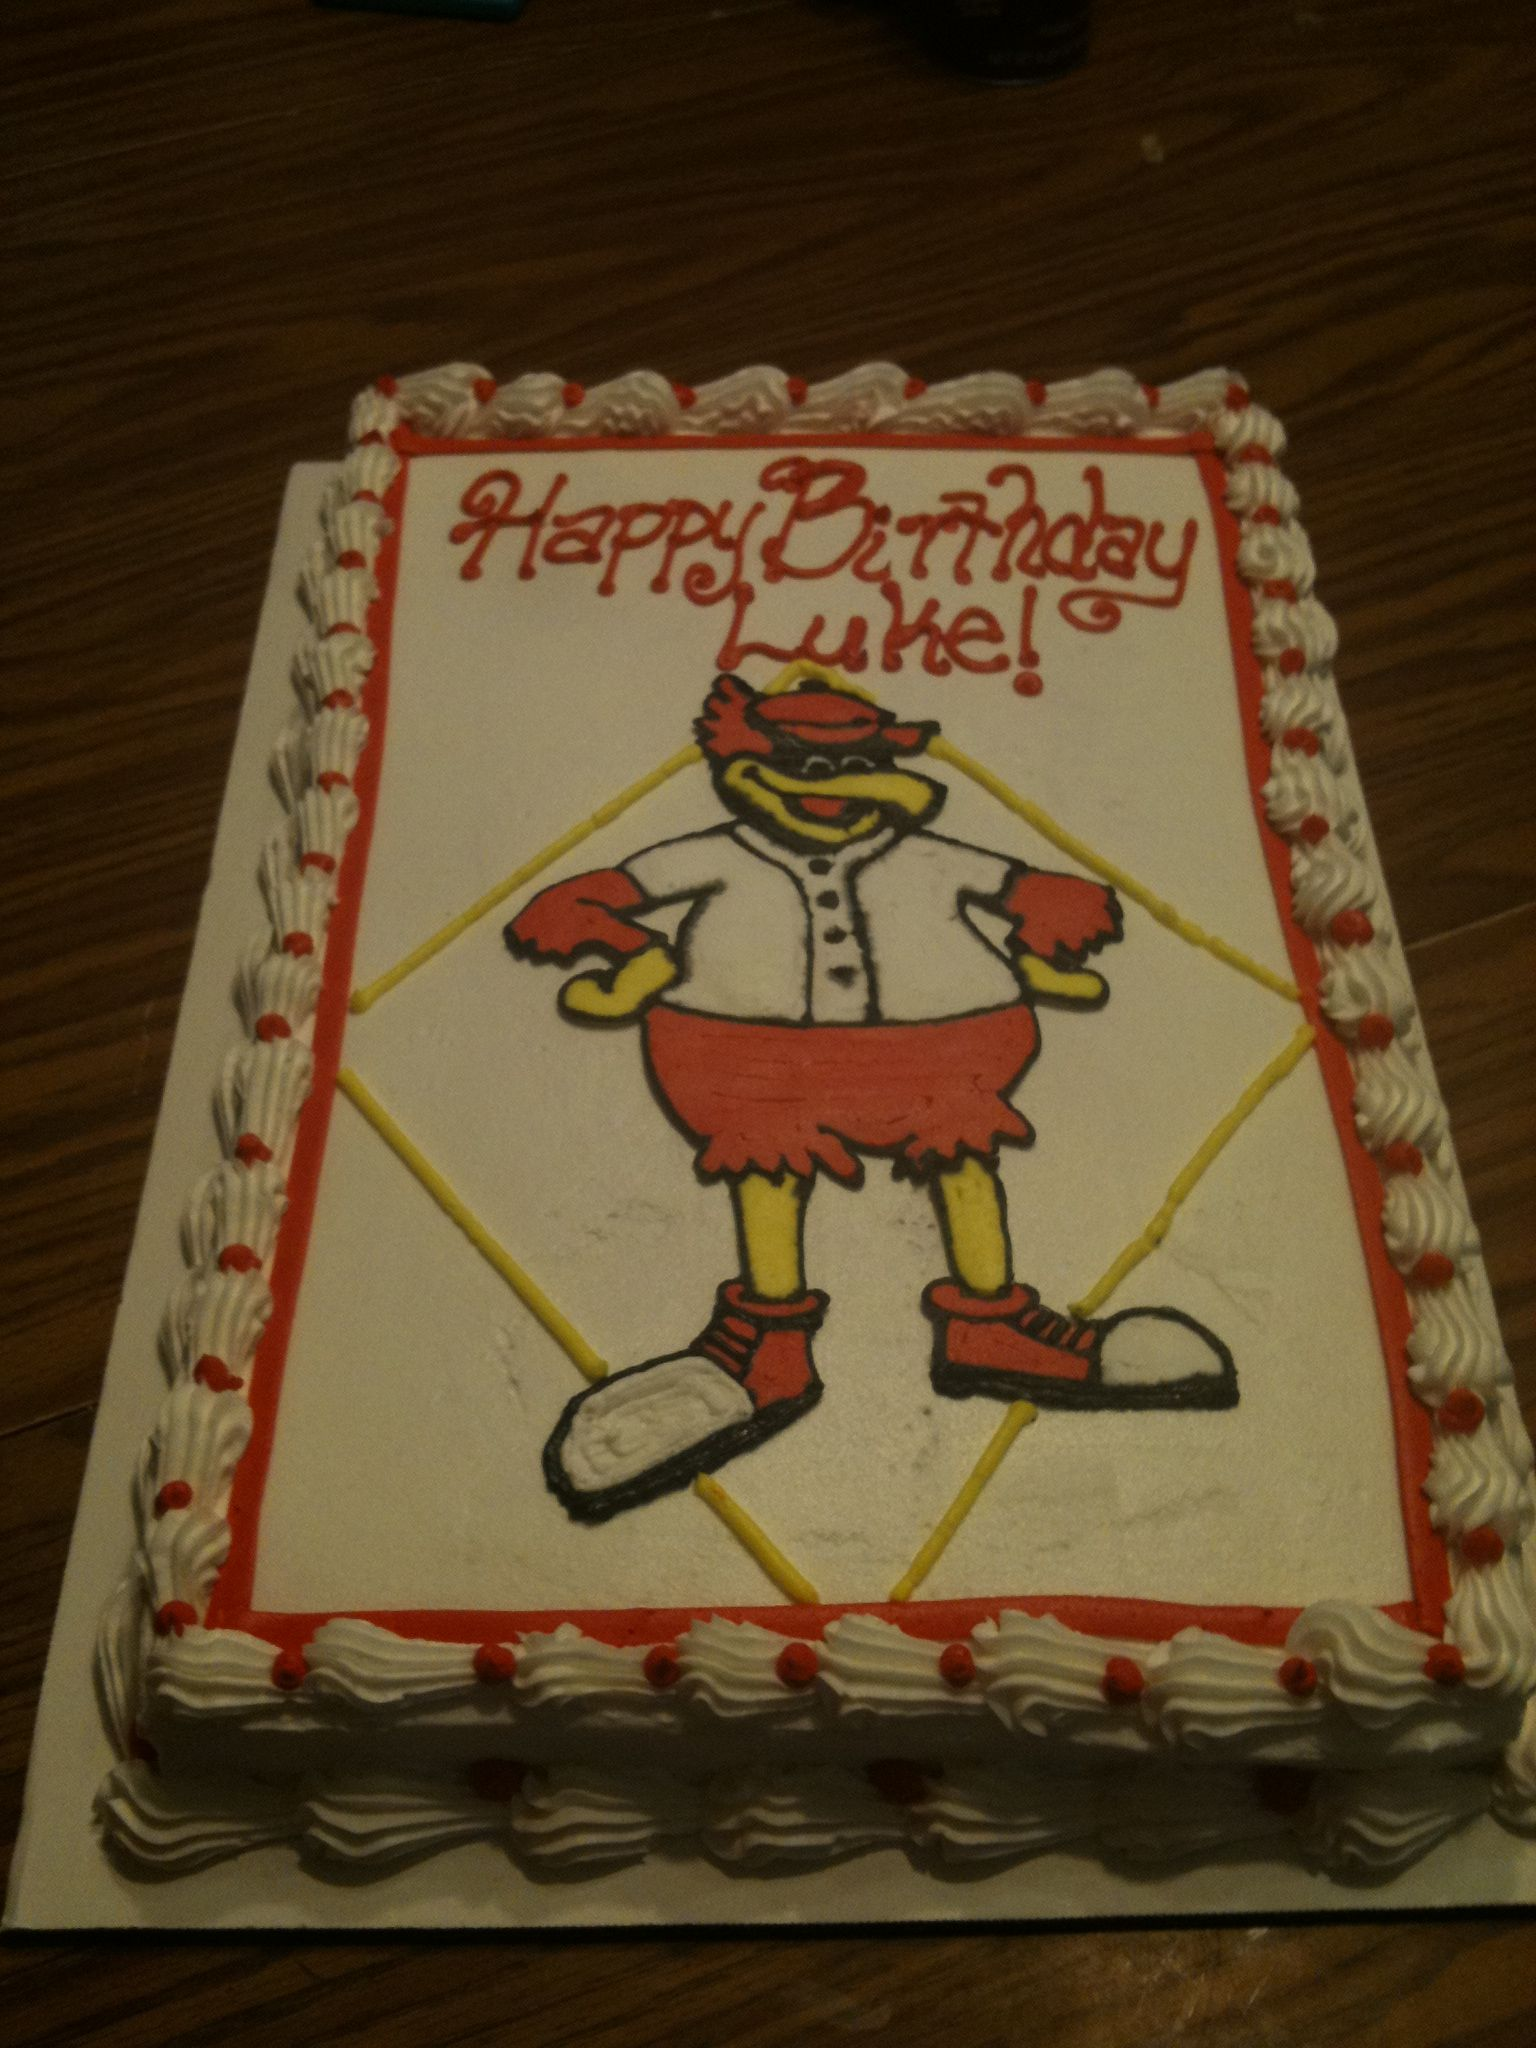 Fred Bird Birthday Cake I Want A Cake Just Like That But